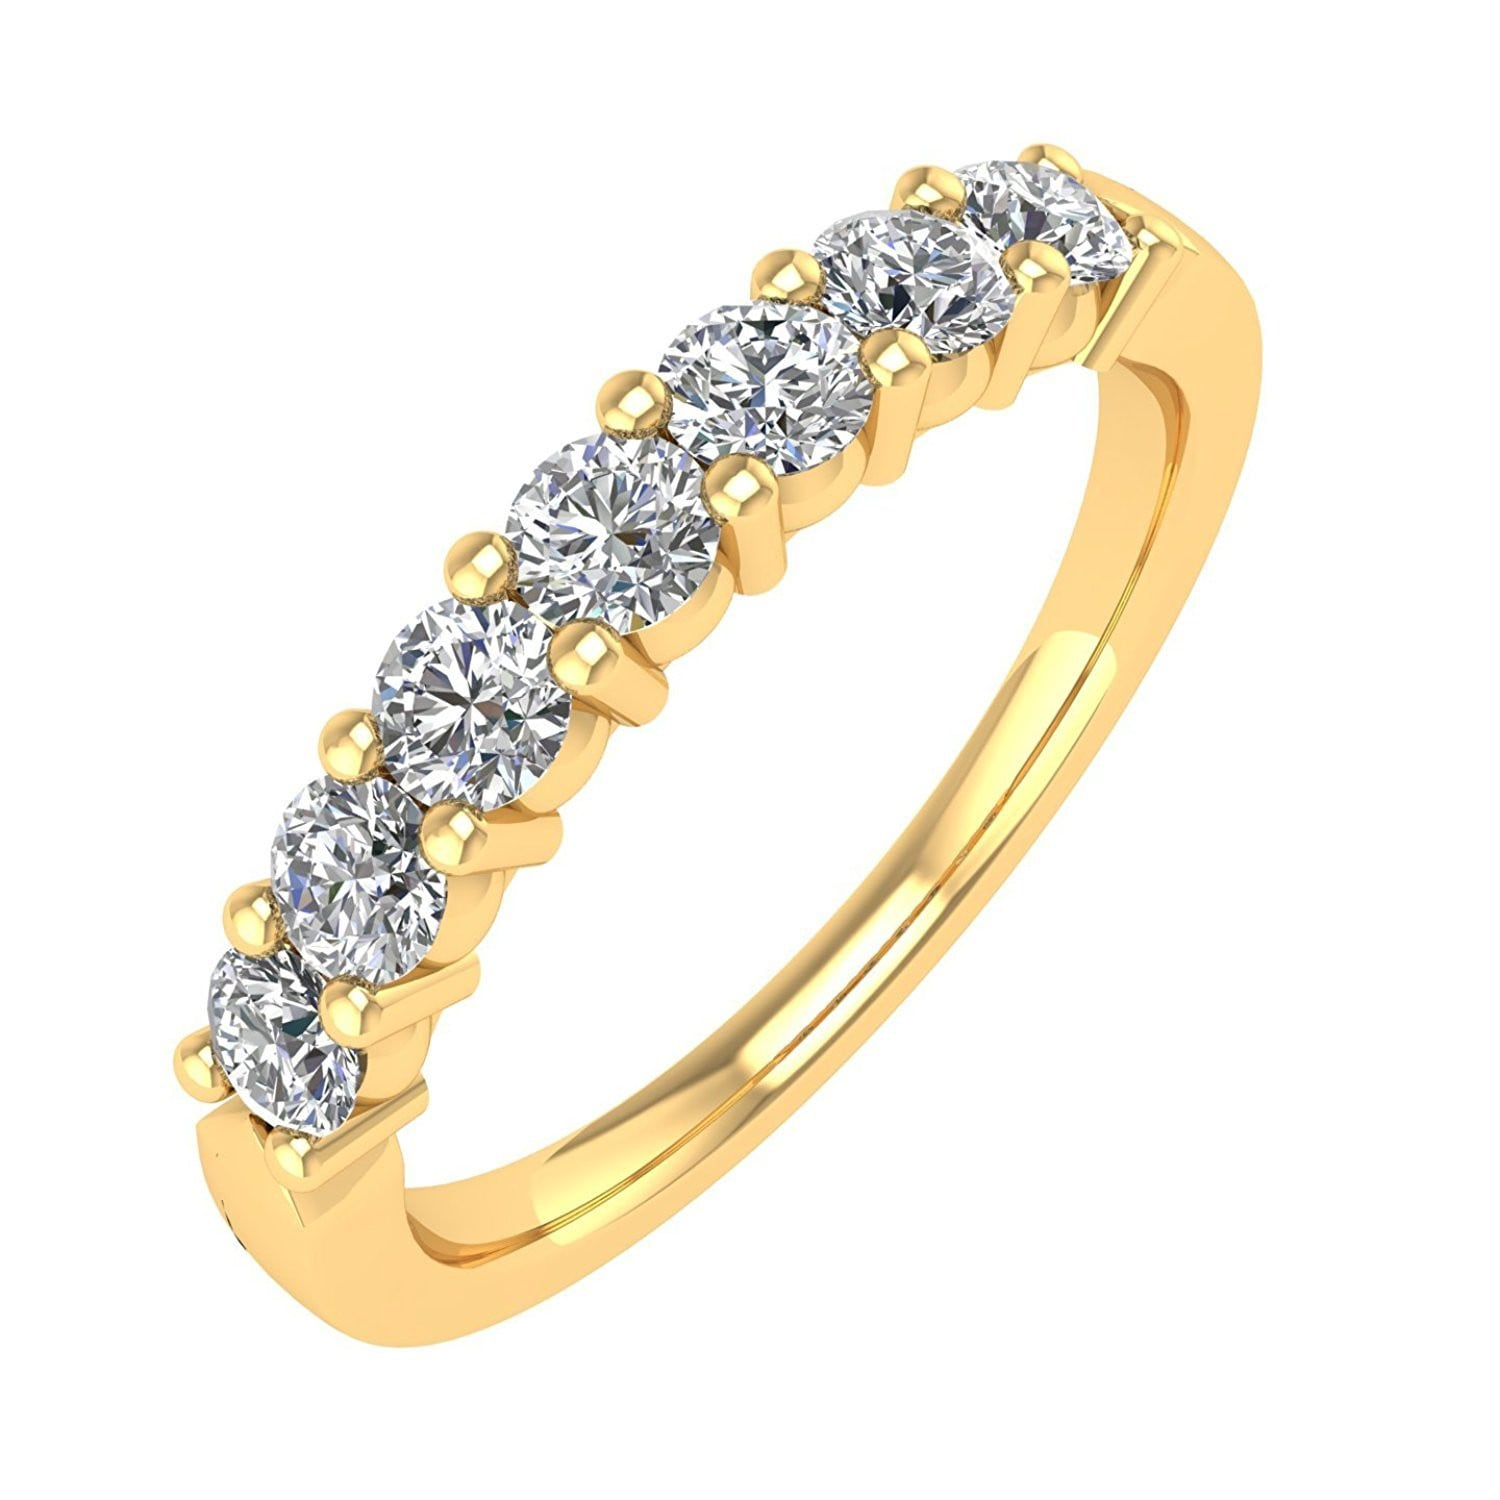 darby rings item co engagement stone contemporary collection graduated round image gabriel diamond